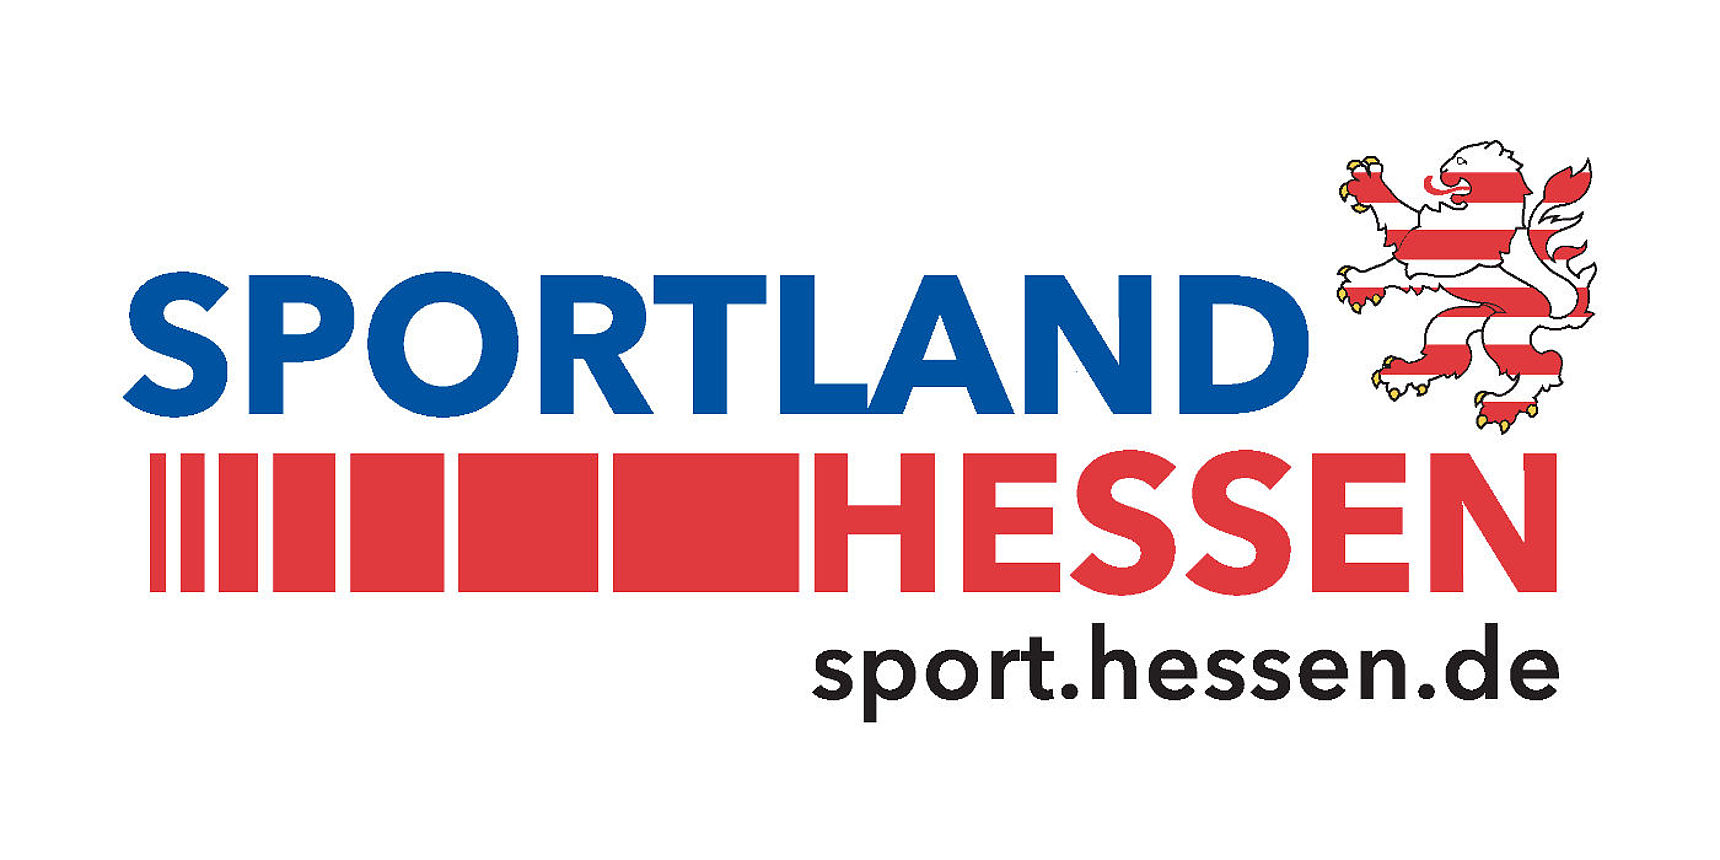 [Translate to English:] Logo Sportland Hessen